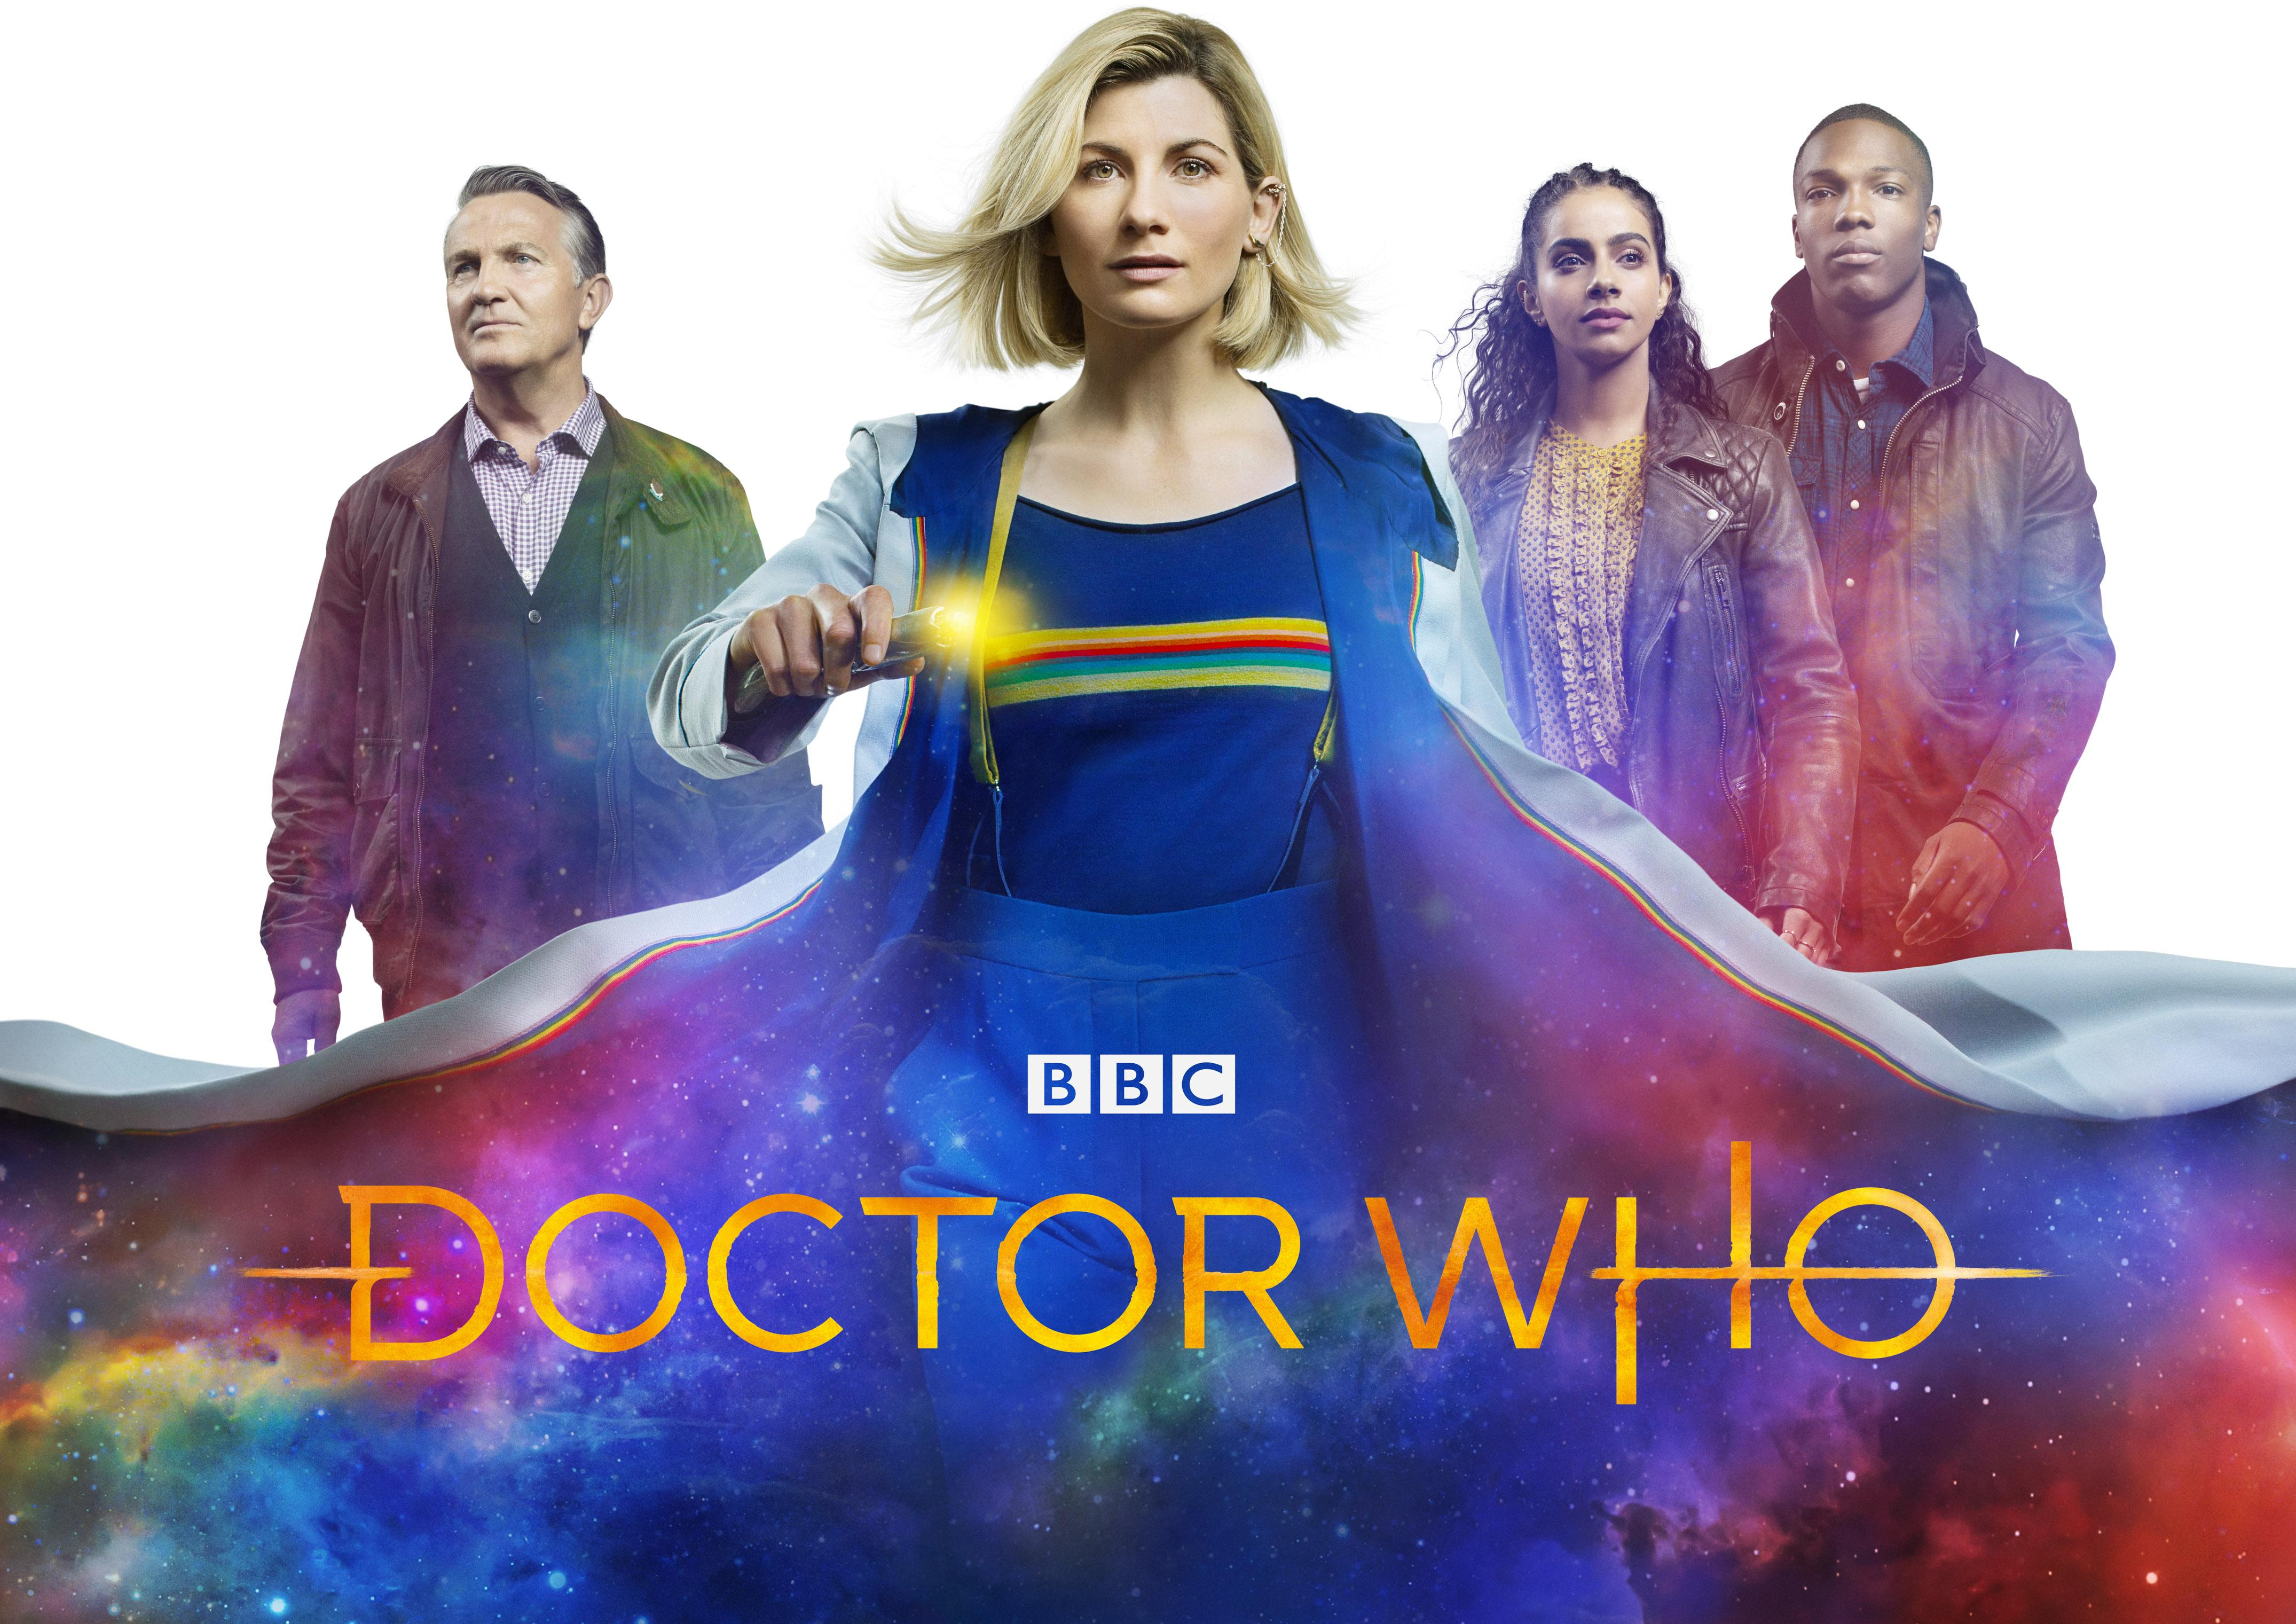 BBC boss insists future of 'Doctor Who' safe as ratings flag